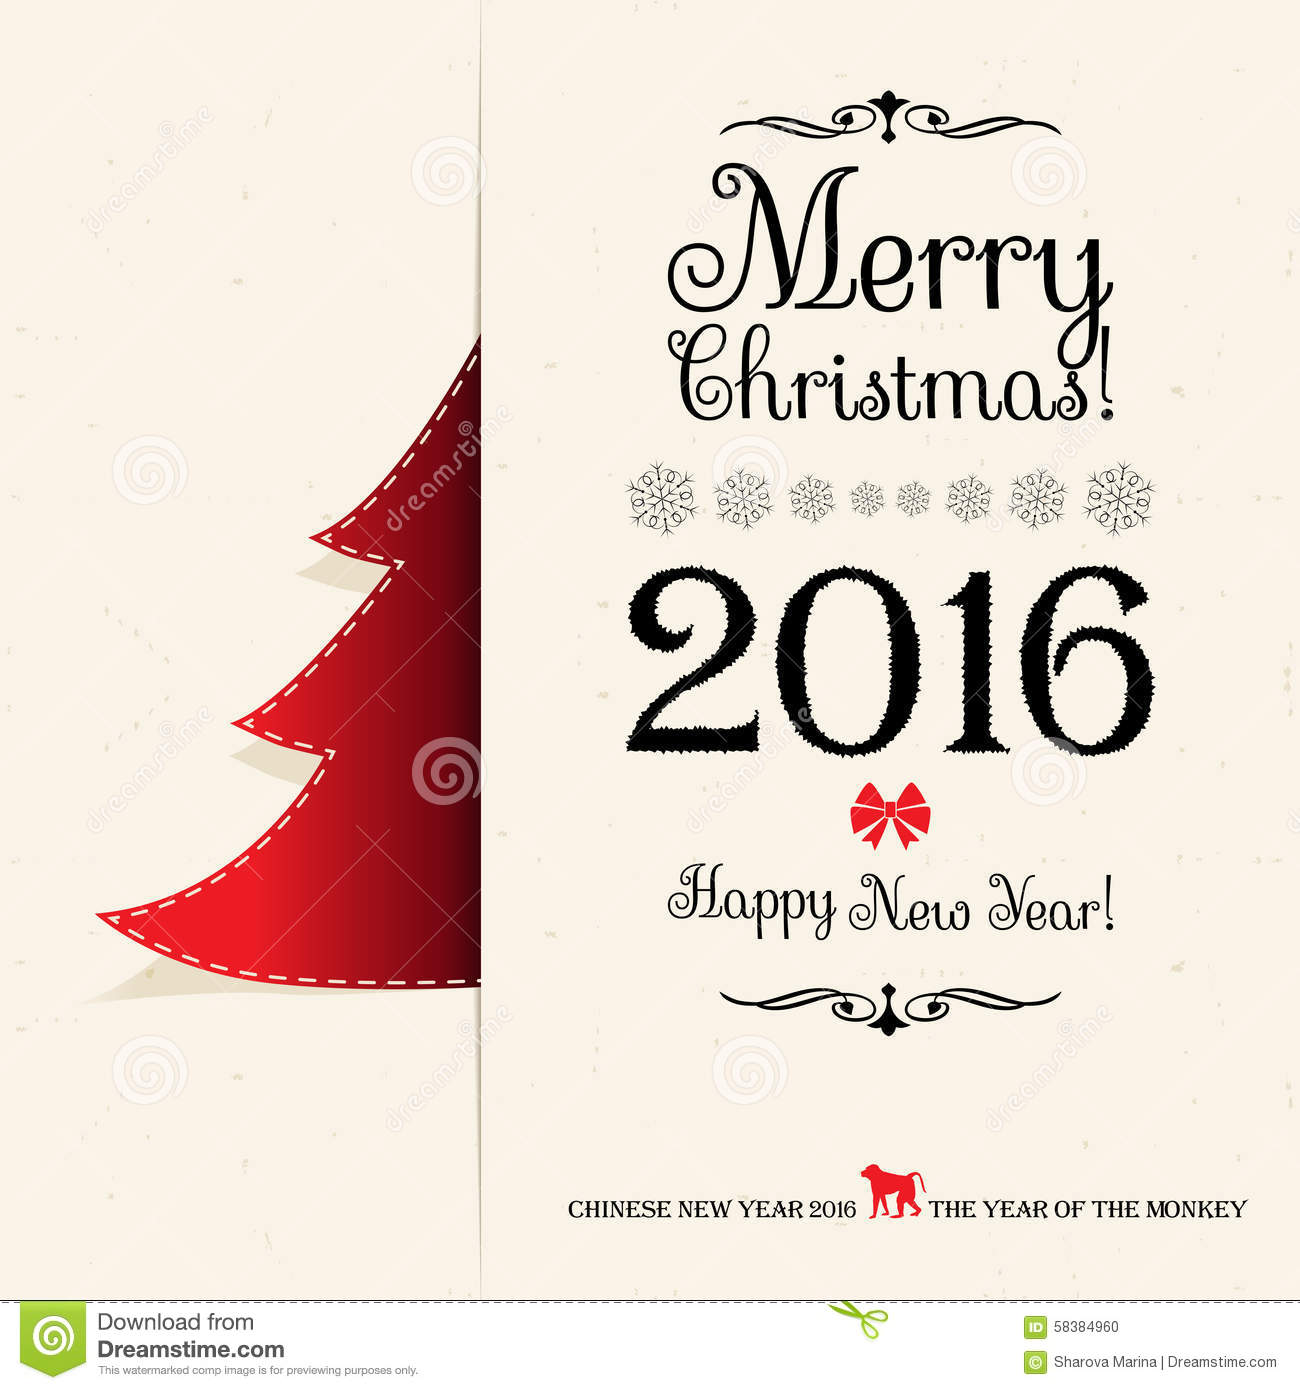 Merry christmas and happy new year vector greeting card 2016 merry christmas and happy new year vector greeting card 2016 kristyandbryce Choice Image